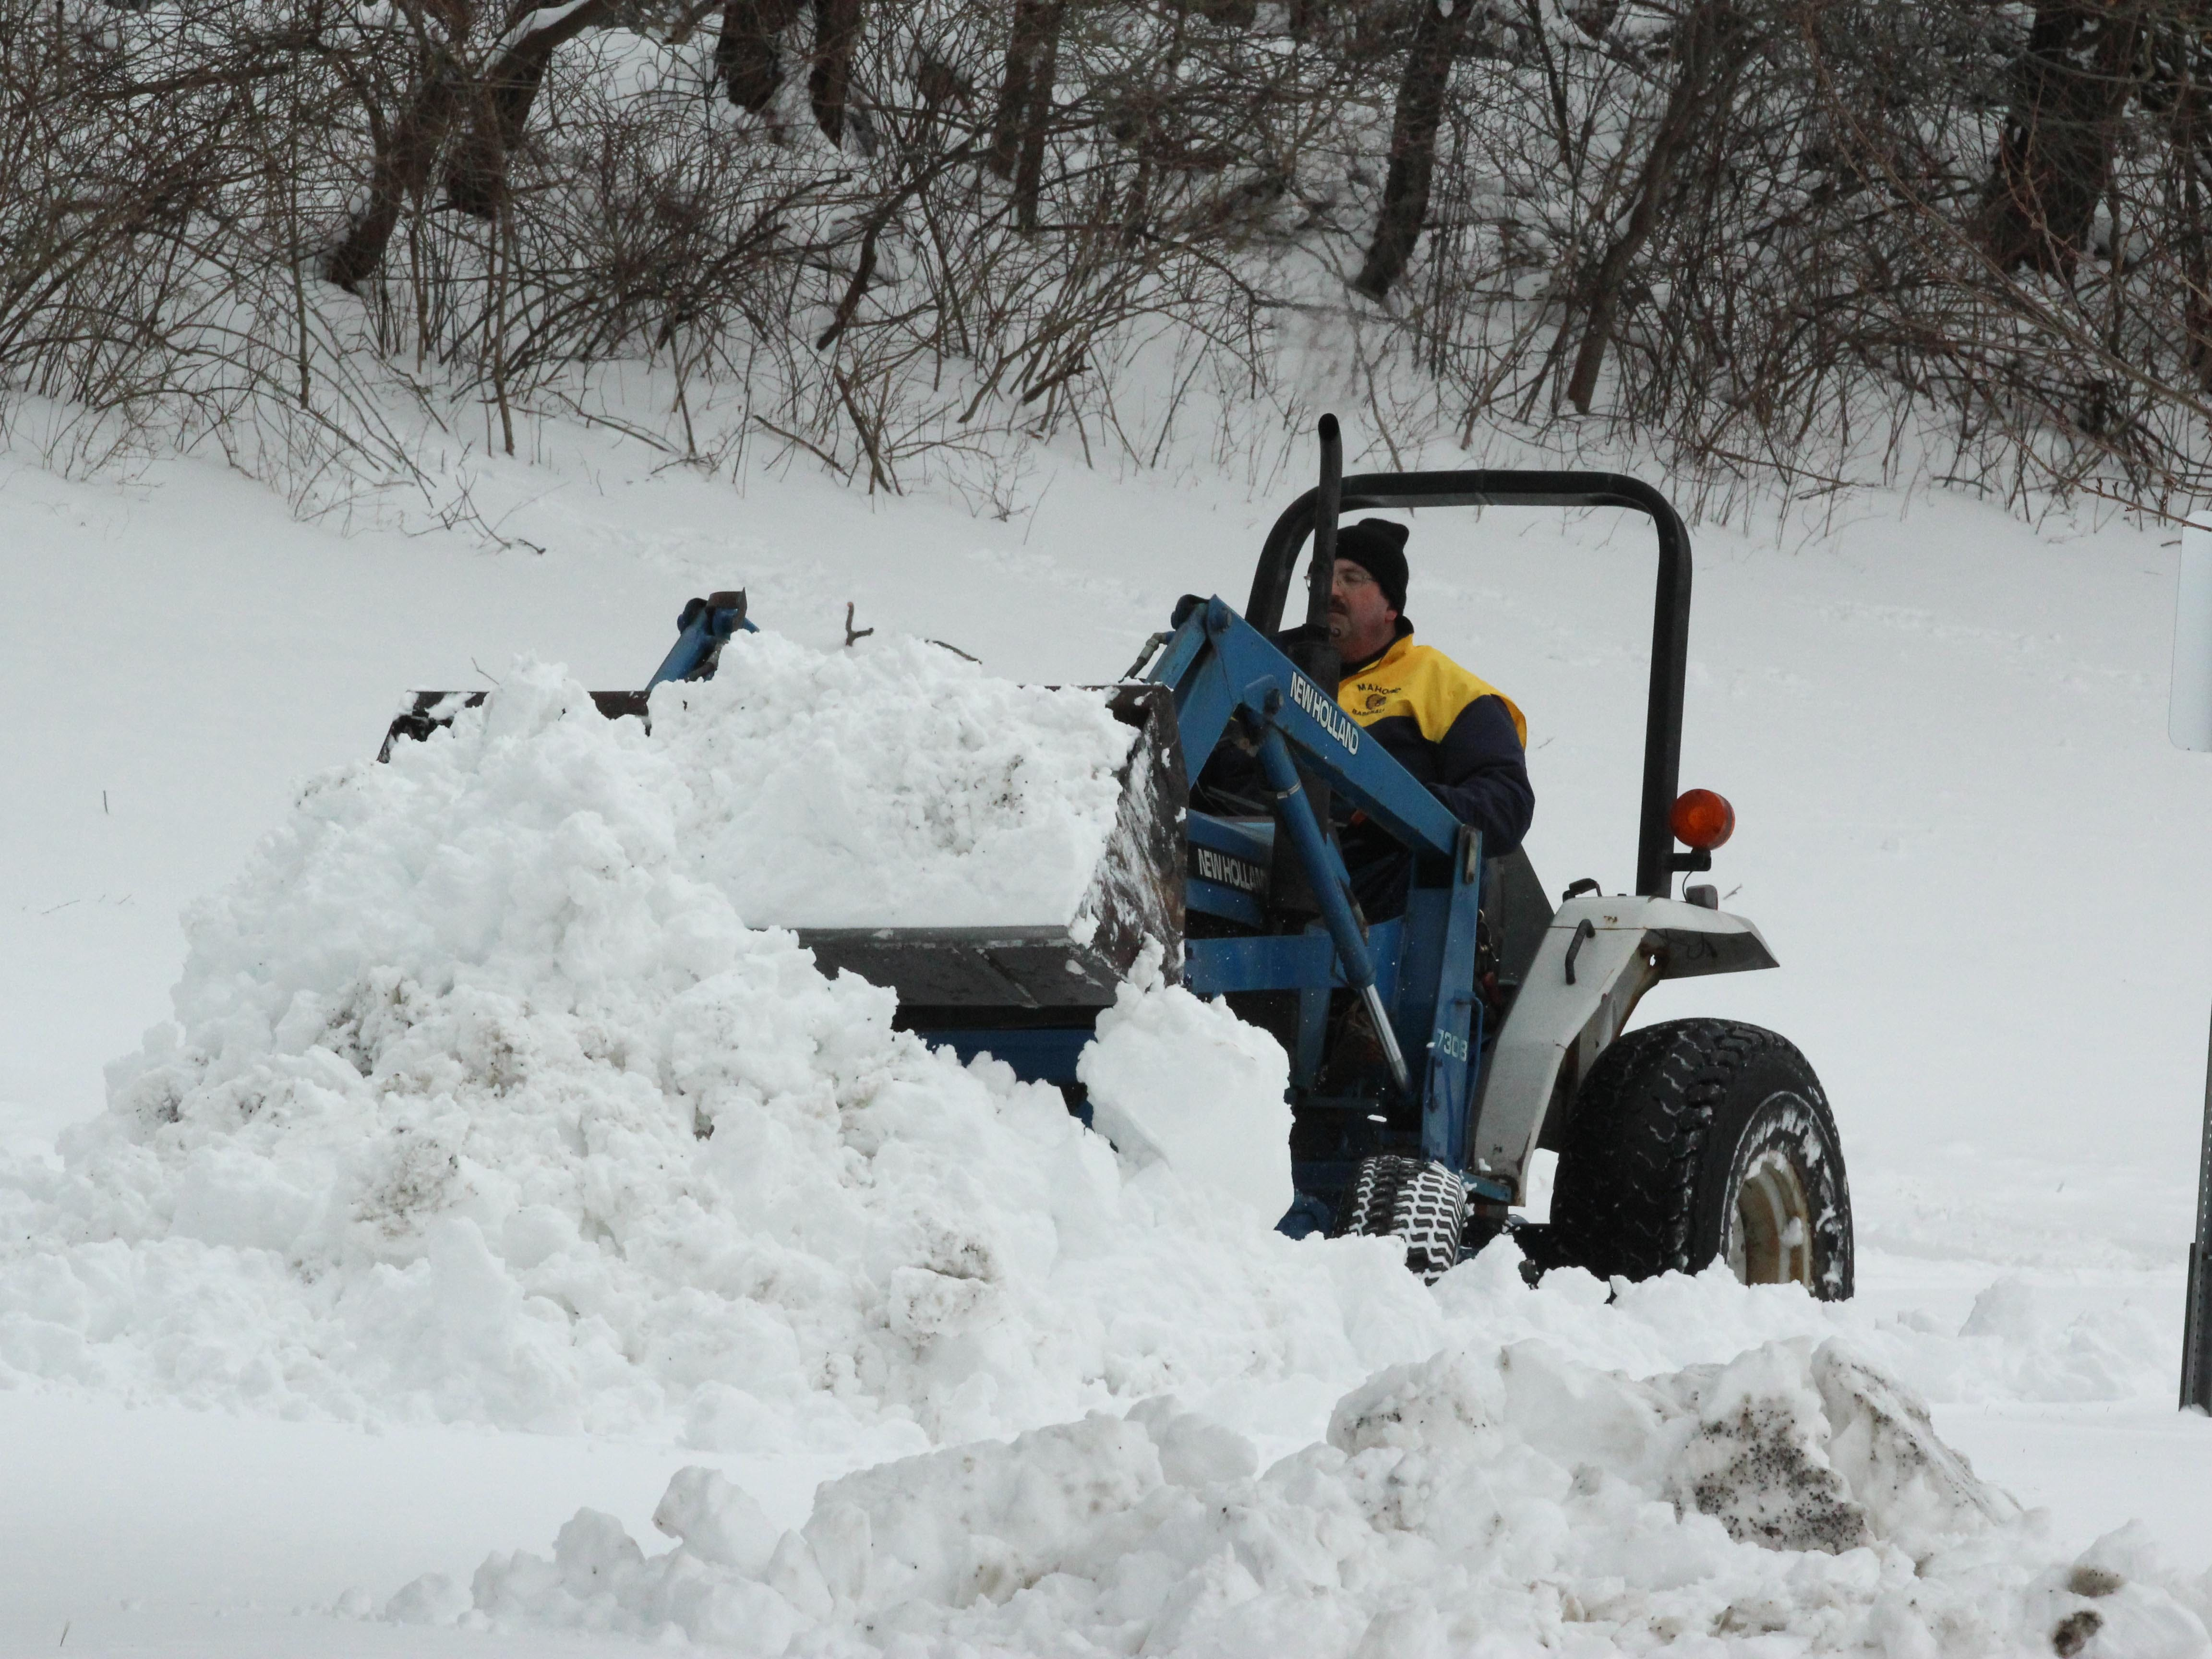 A plow clears snow from parking lots during a snow day in Mahopac, N.Y.